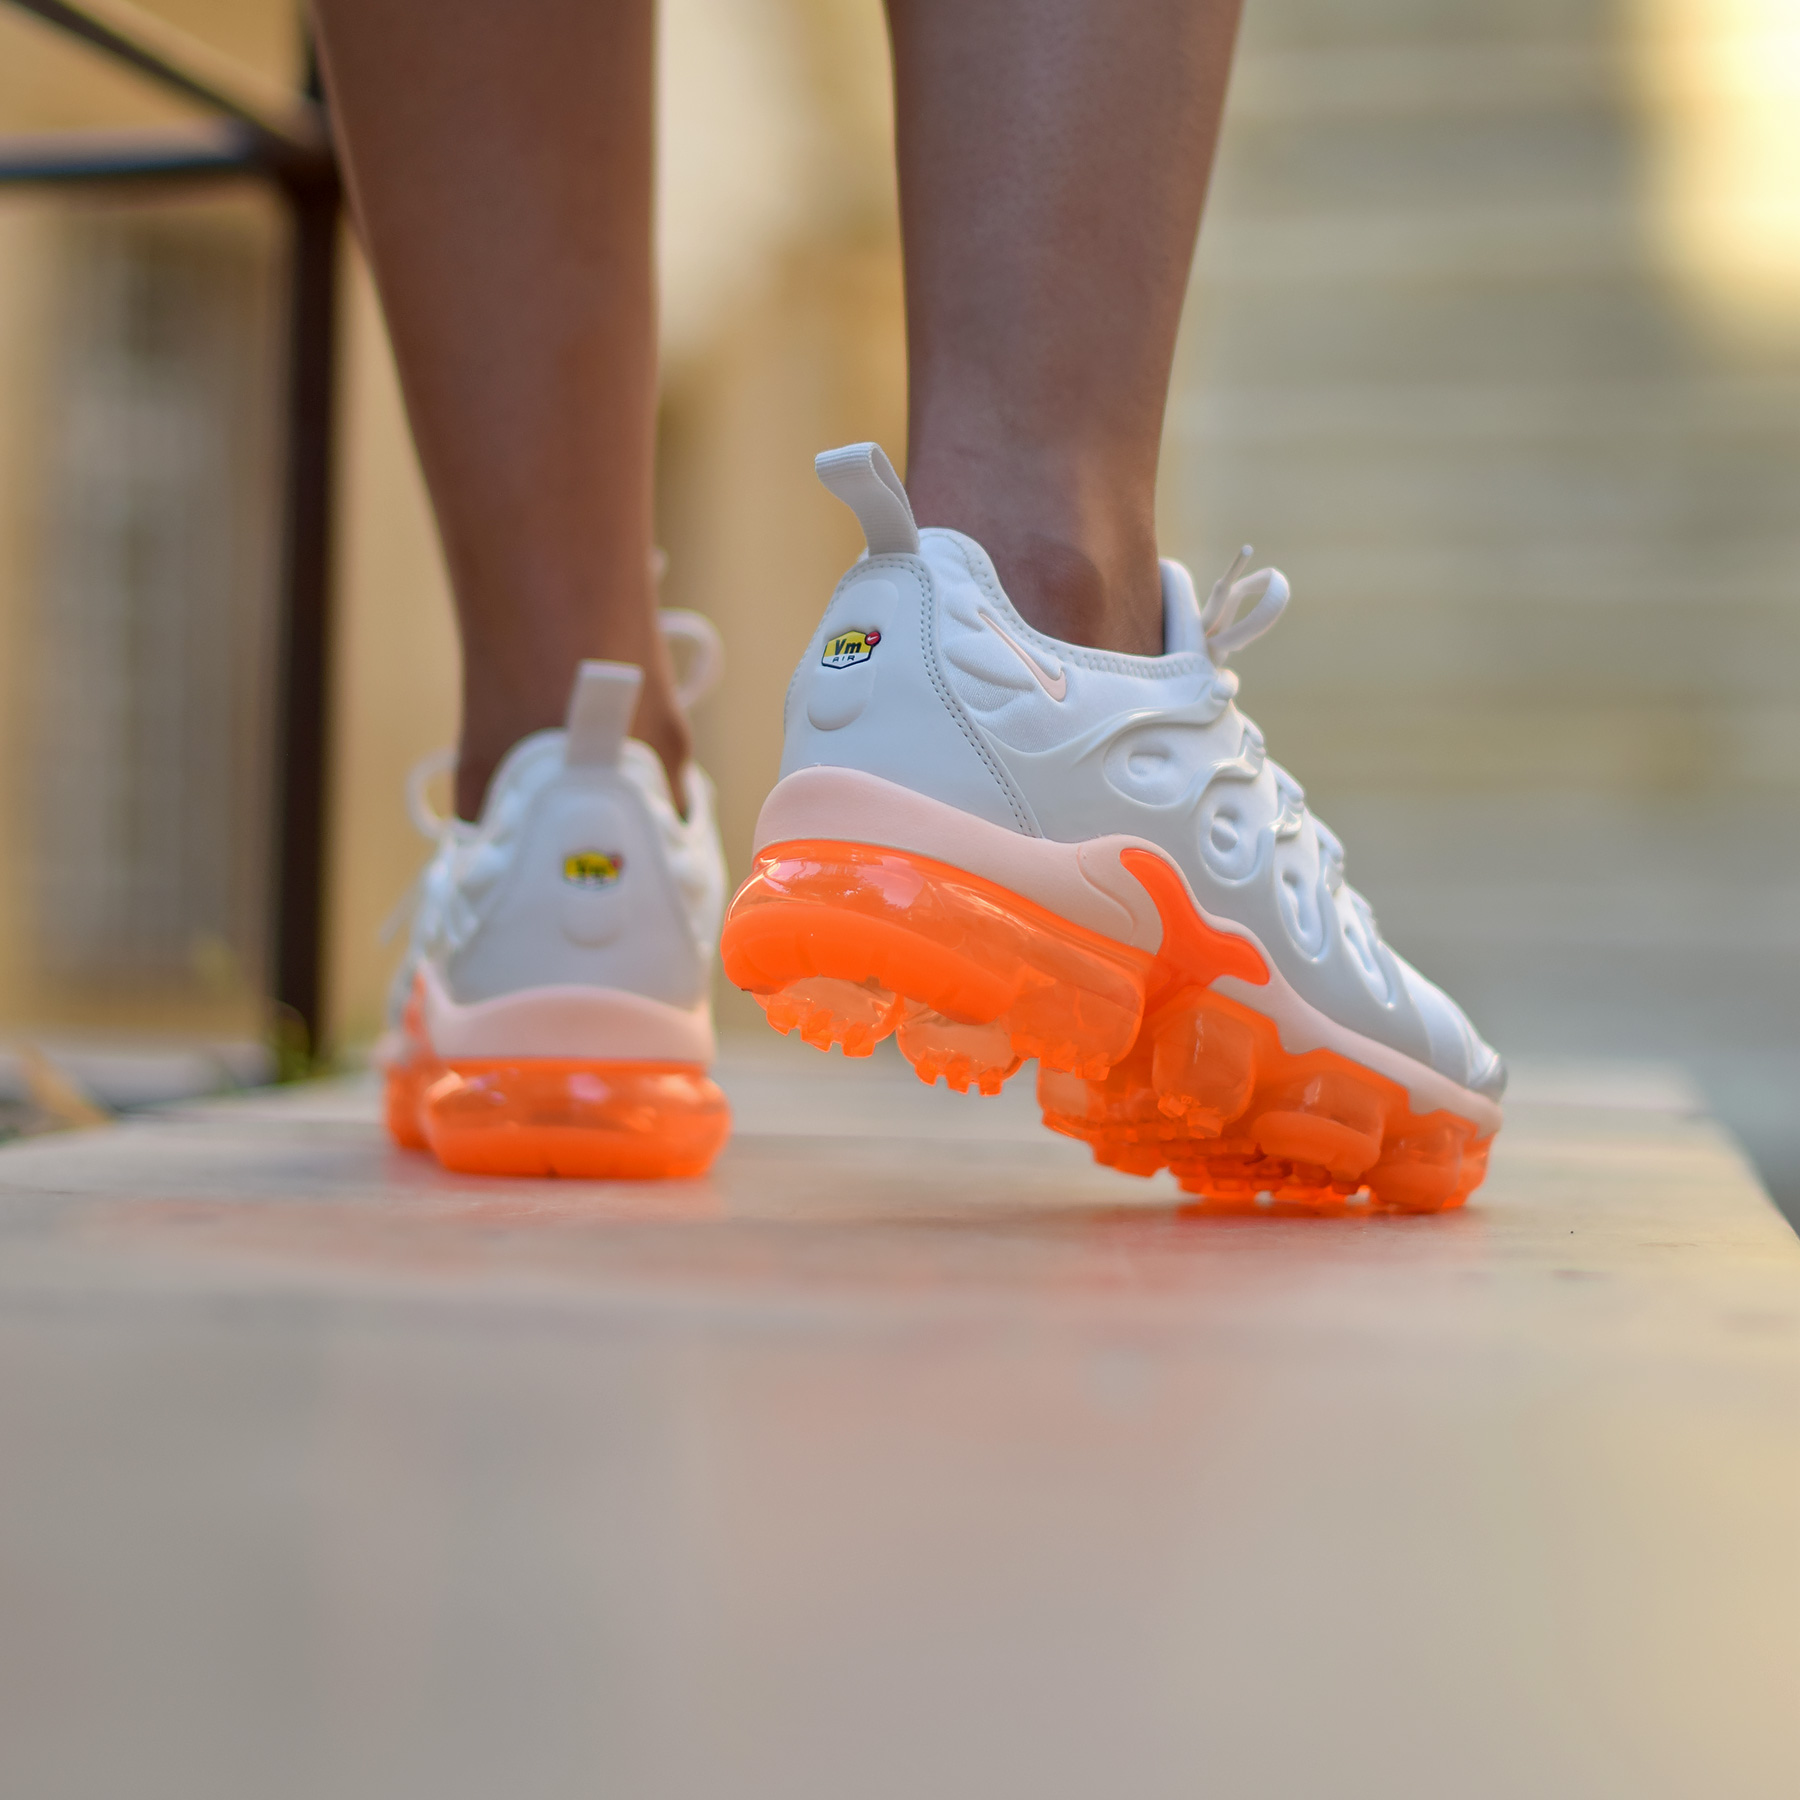 Que vaut la Nike Wmns Air Vapormax Plus 'Creamsicle' Phantom